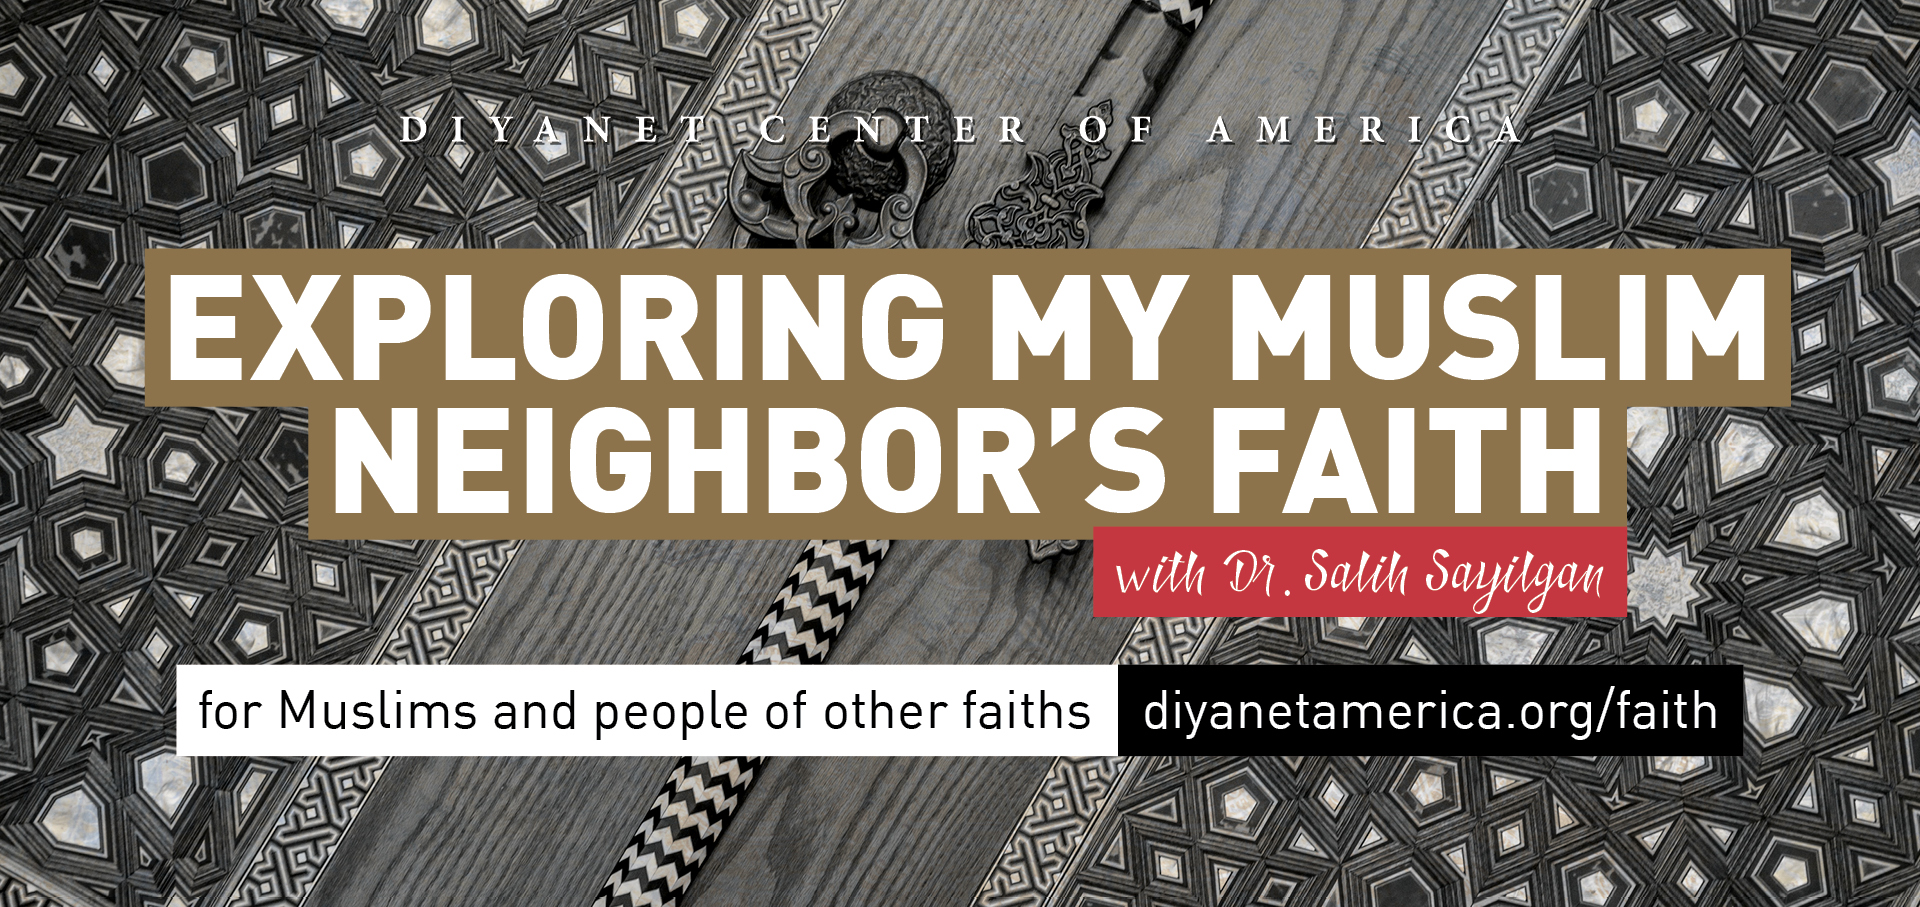 Exploring My Muslim Neighbor's Faith